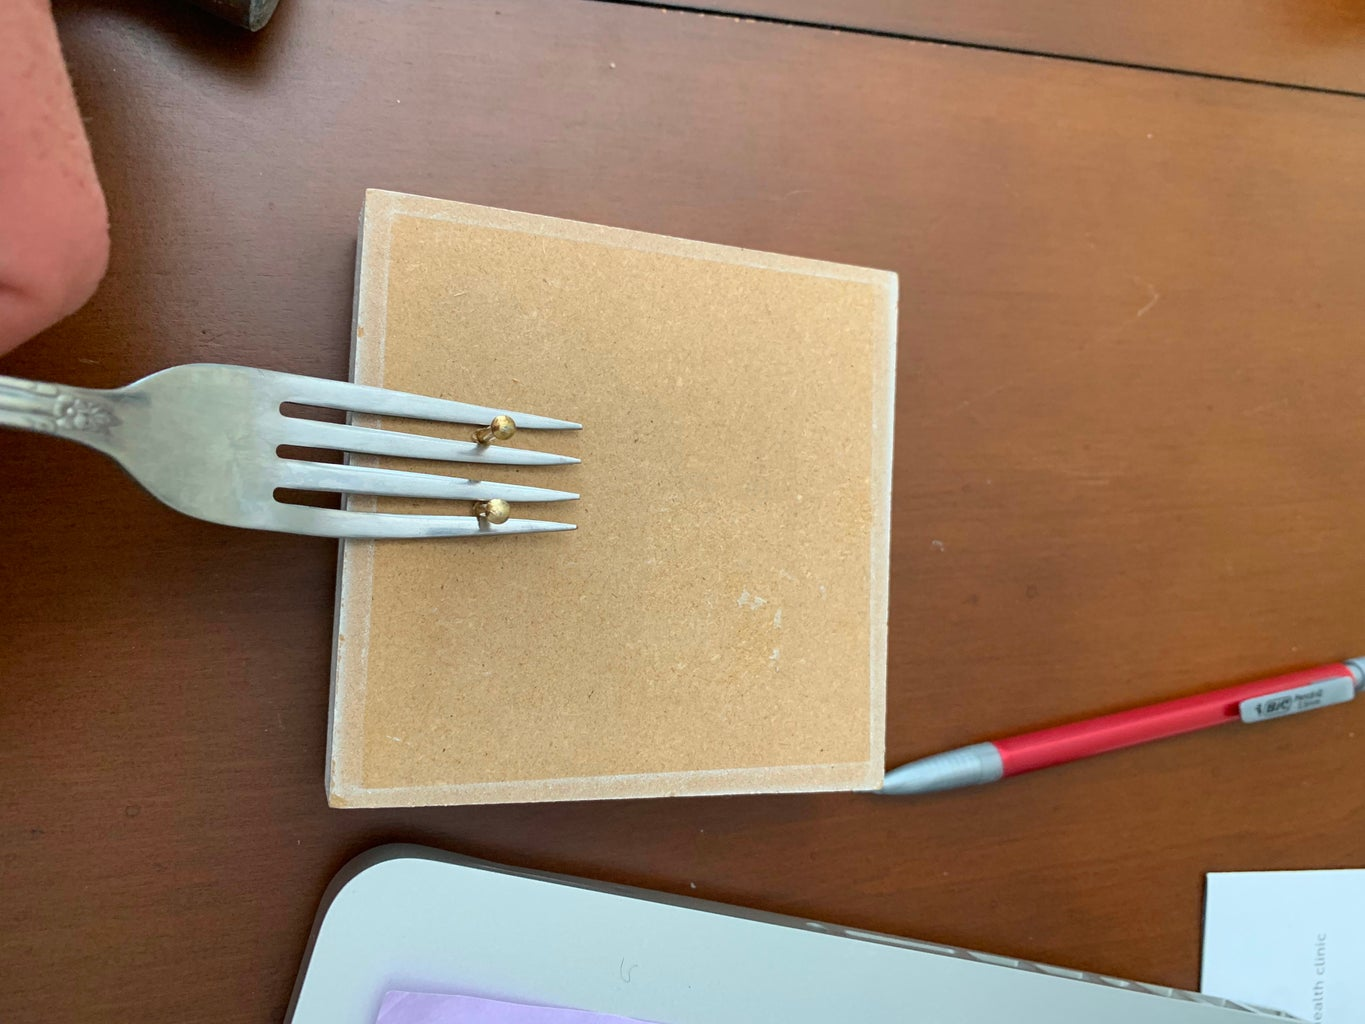 Sliding the Fork Into Place